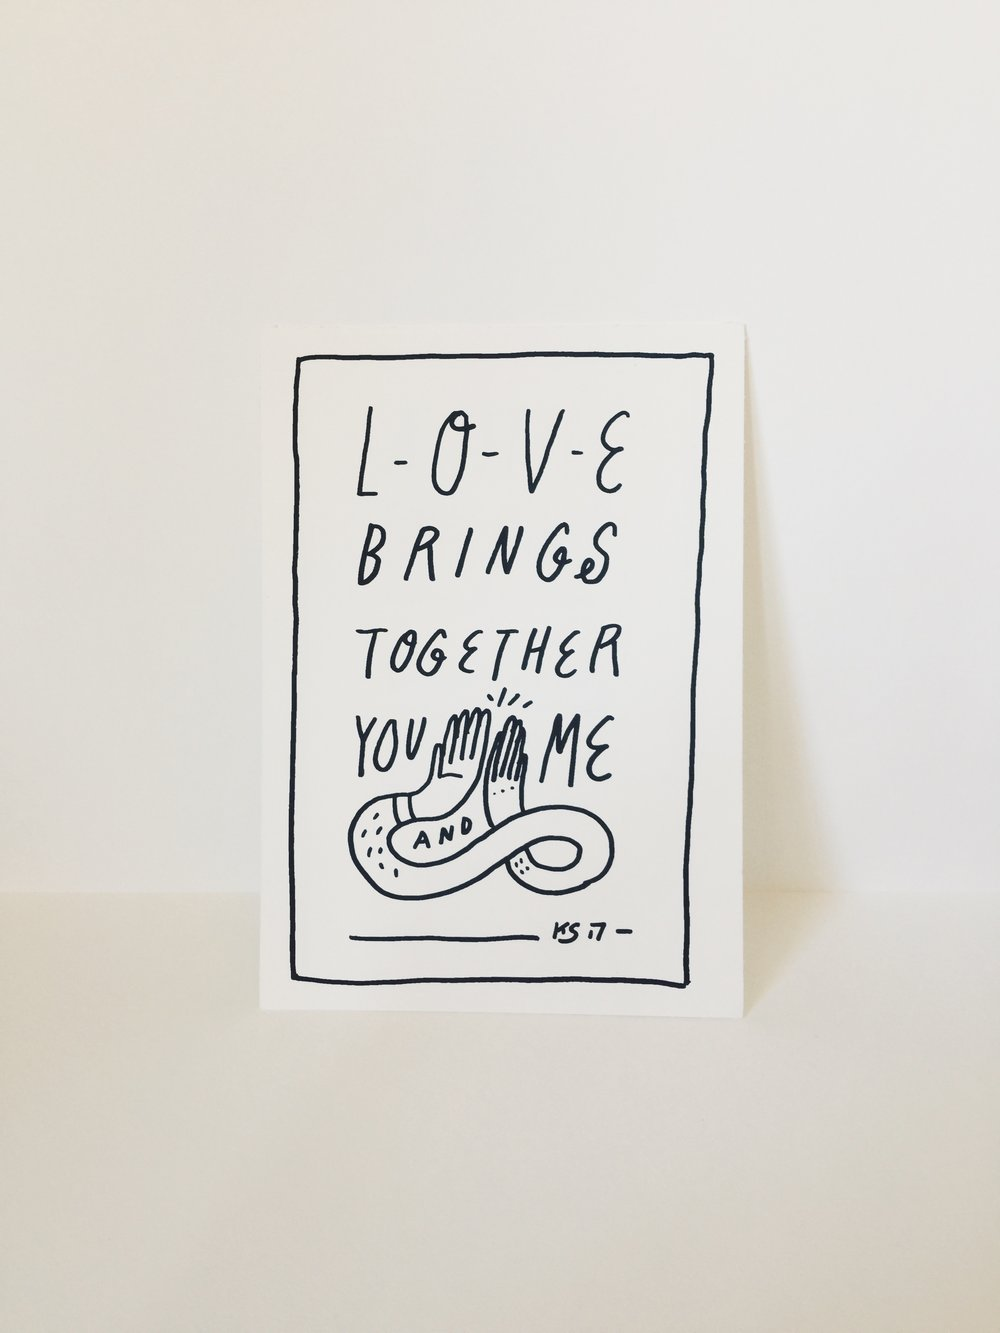 Love Brings Together You and Me by Kyle Steed